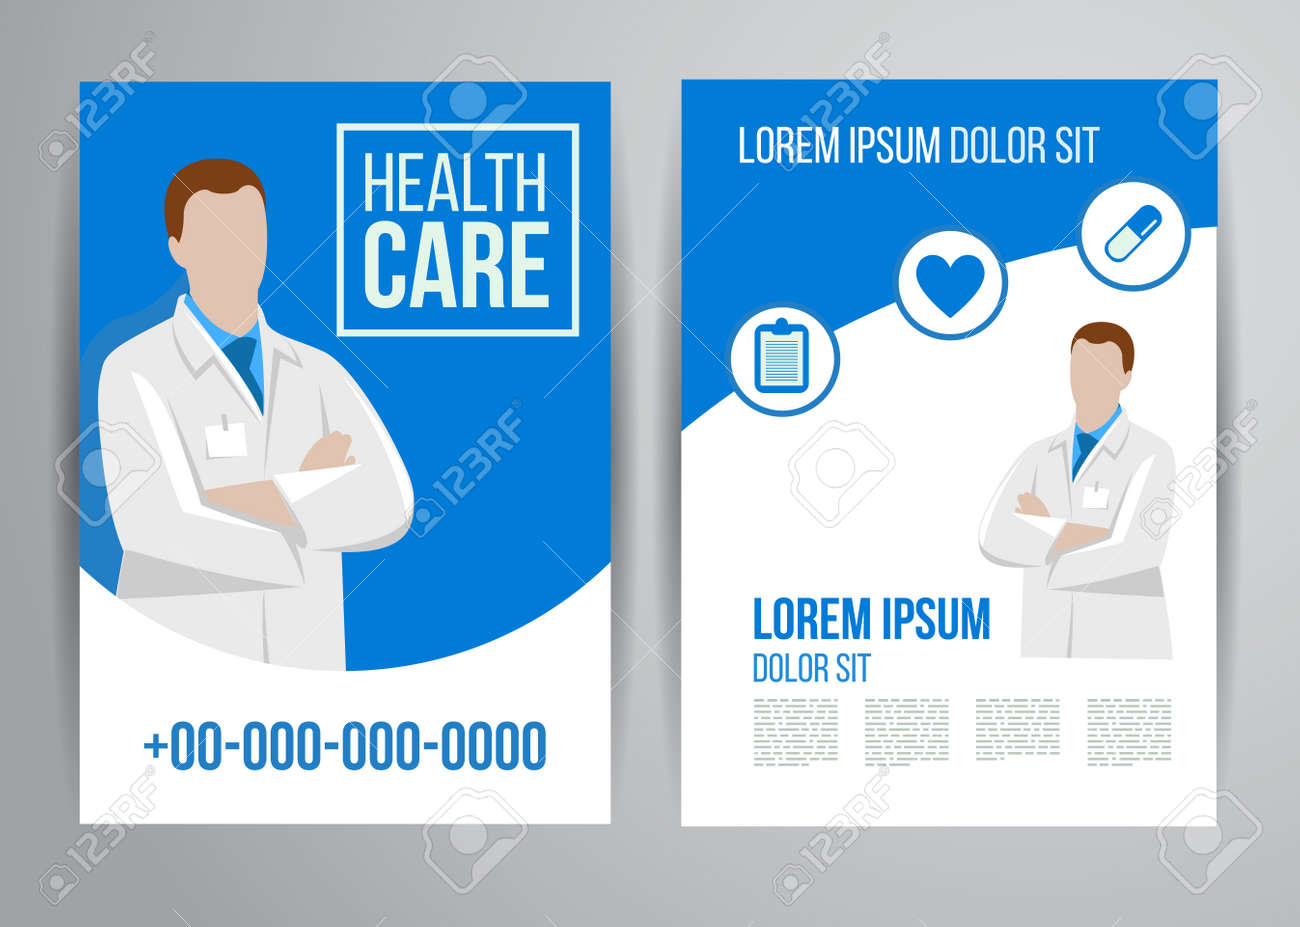 Poster design medical - Vector Health Care Brochure For Clinic With Doctors Medical Flyer Design Stock Vector